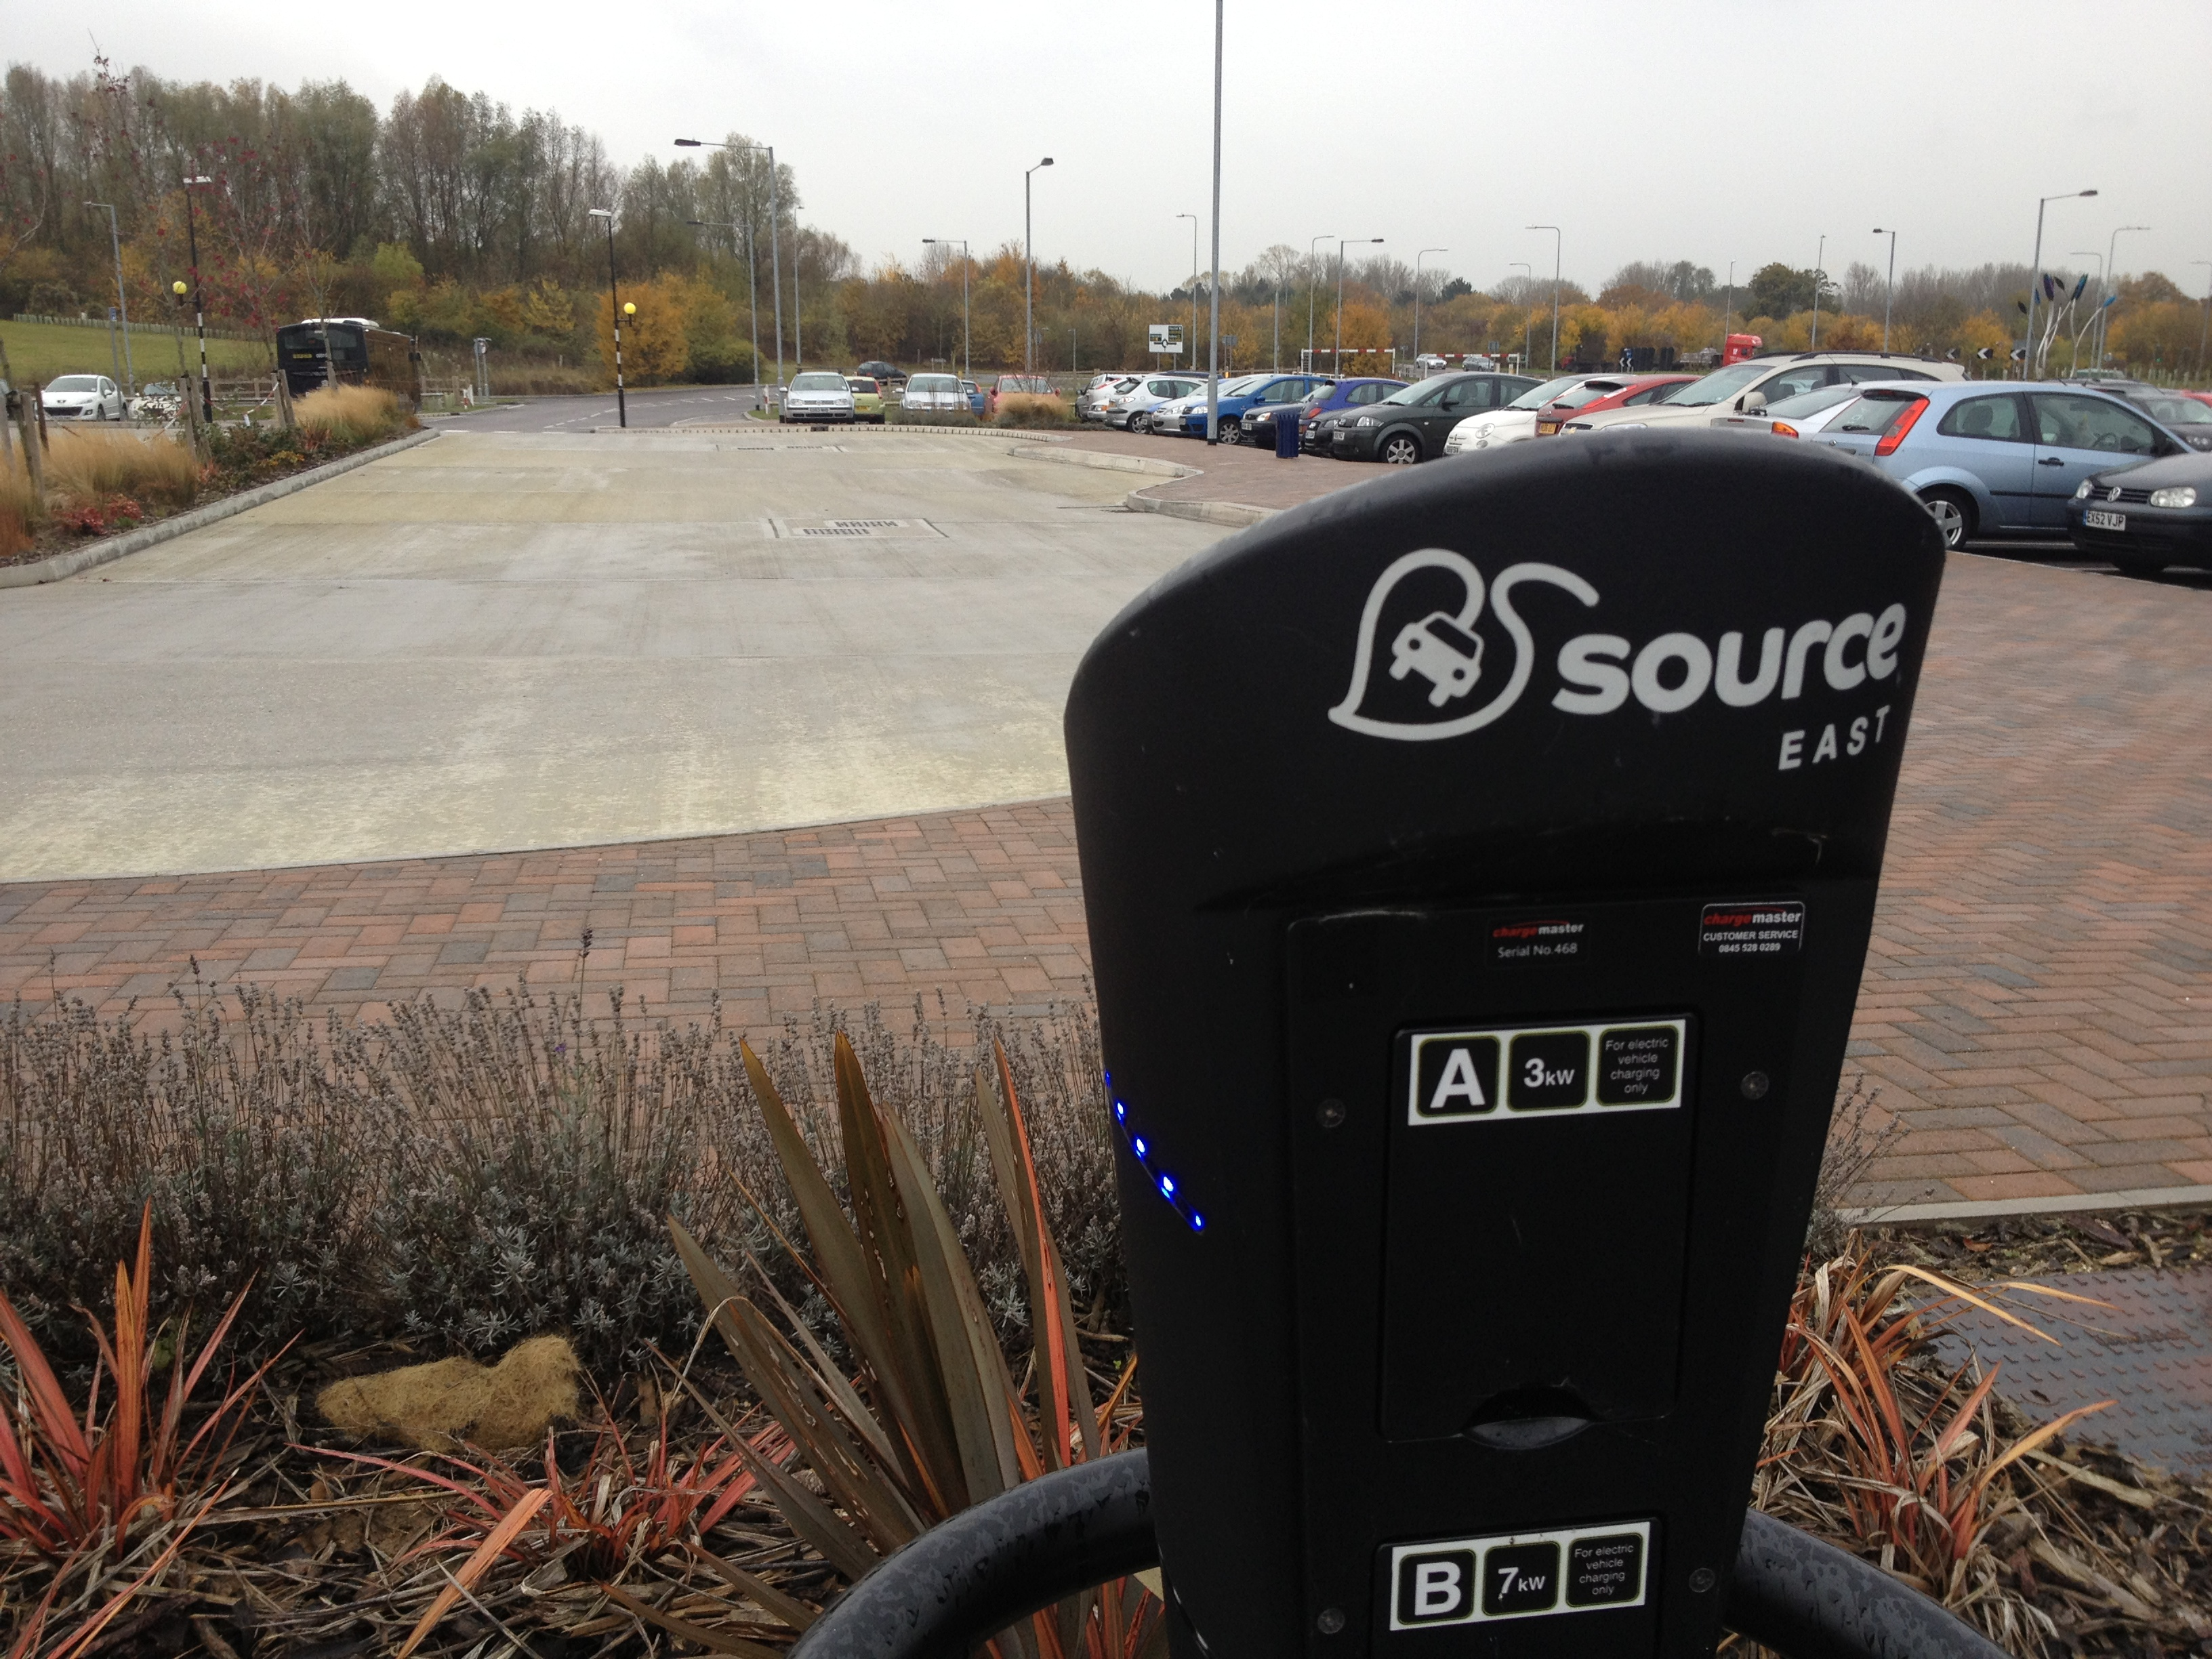 electric cars essex, electric cars, electric car charging, essex county council